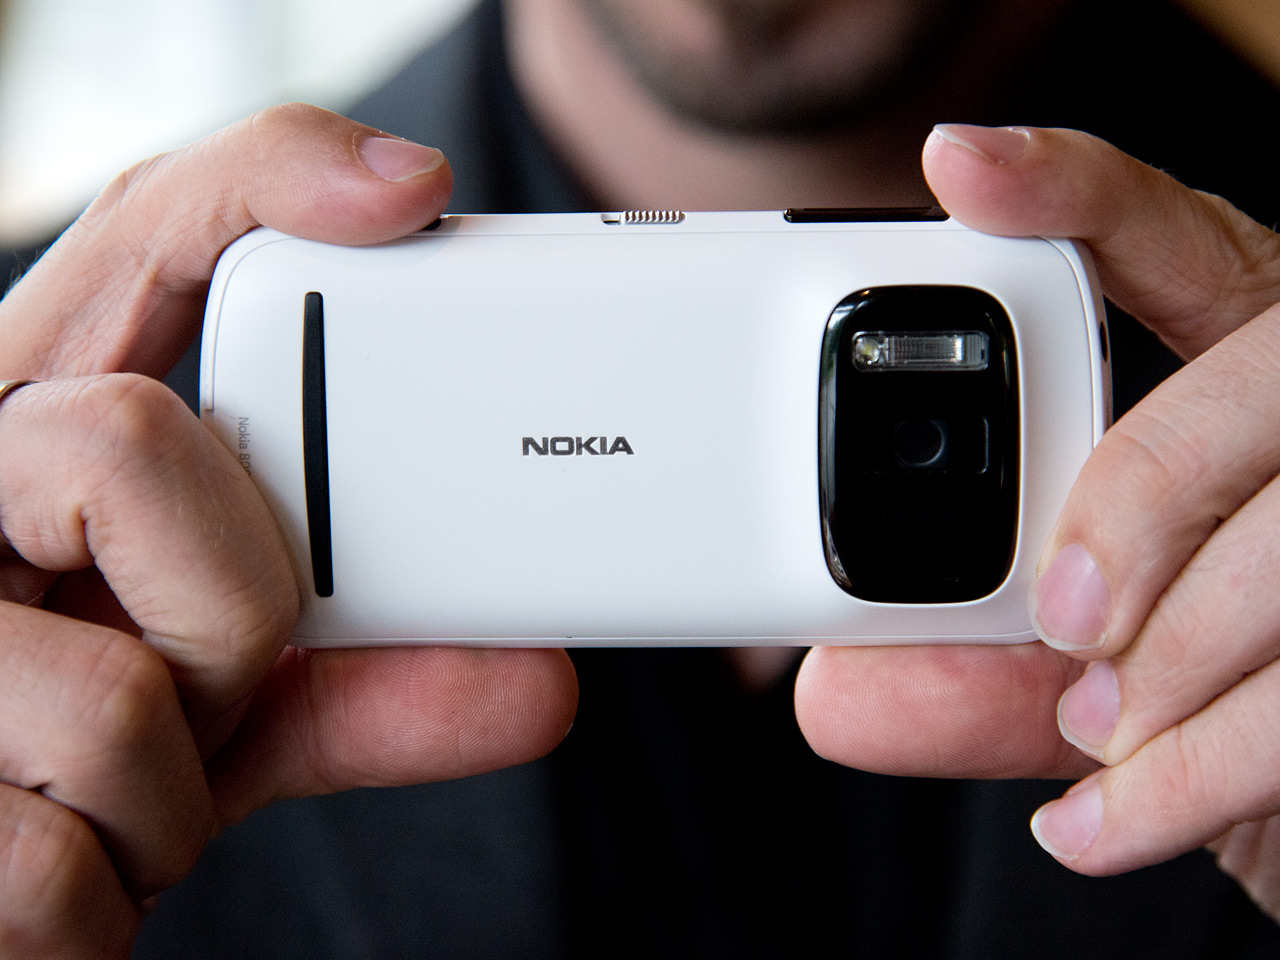 Did you know there is some crazy conspiracy theory about the Nokia-Microsoft deal?